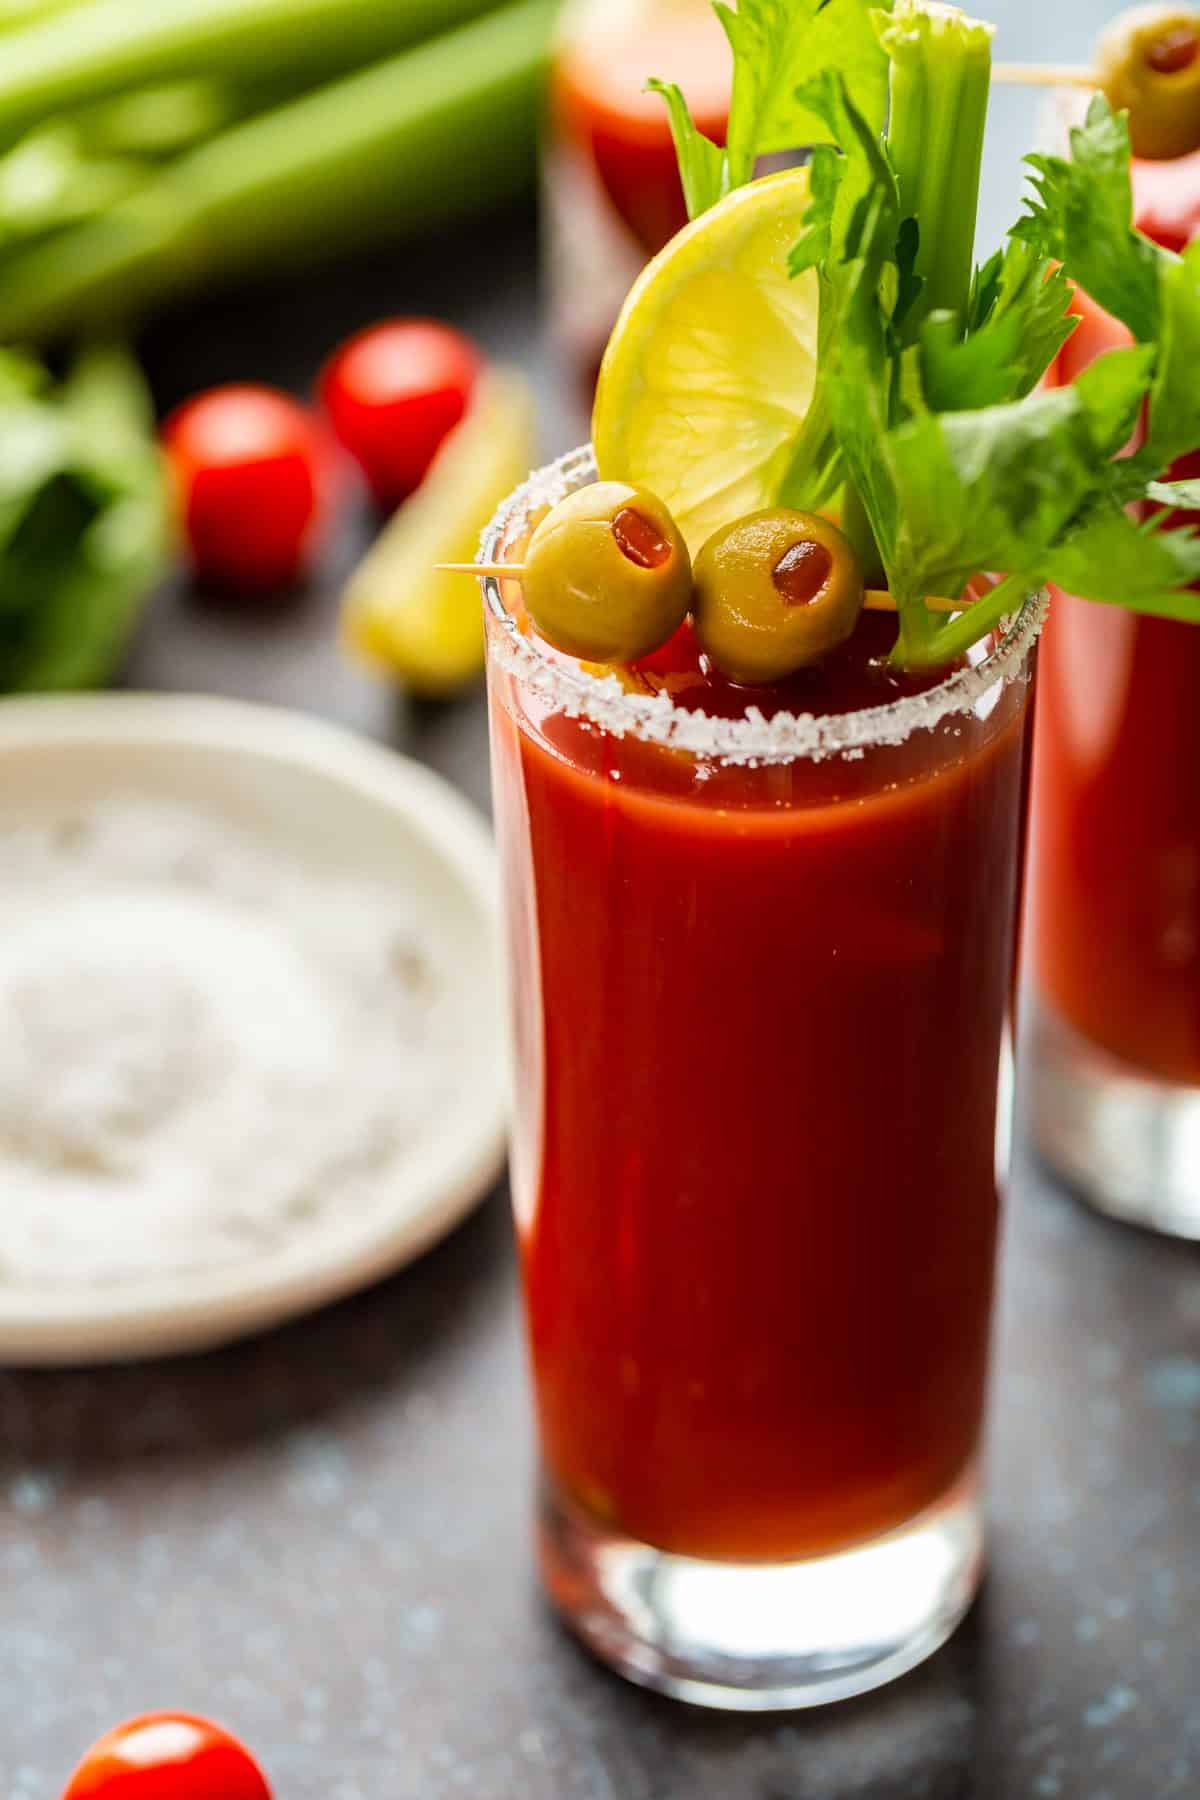 Bloody Mary garnished with olives and celery